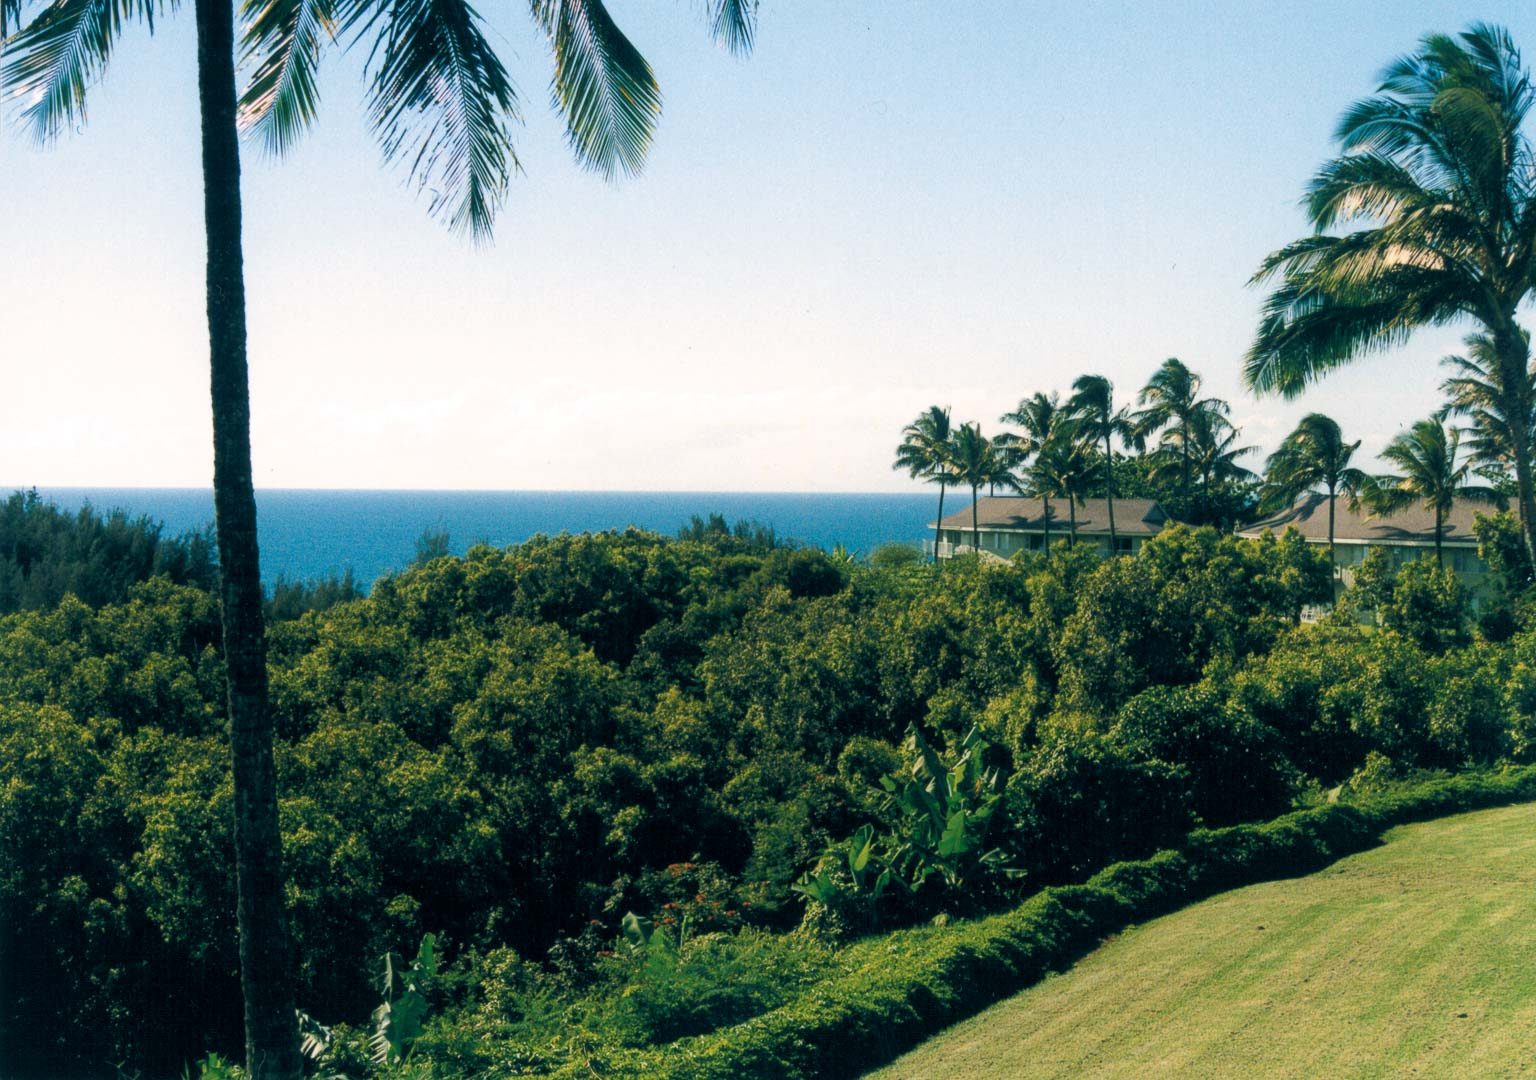 A scenic ocean view from VRI's Alii Kai Resort in Hawaii